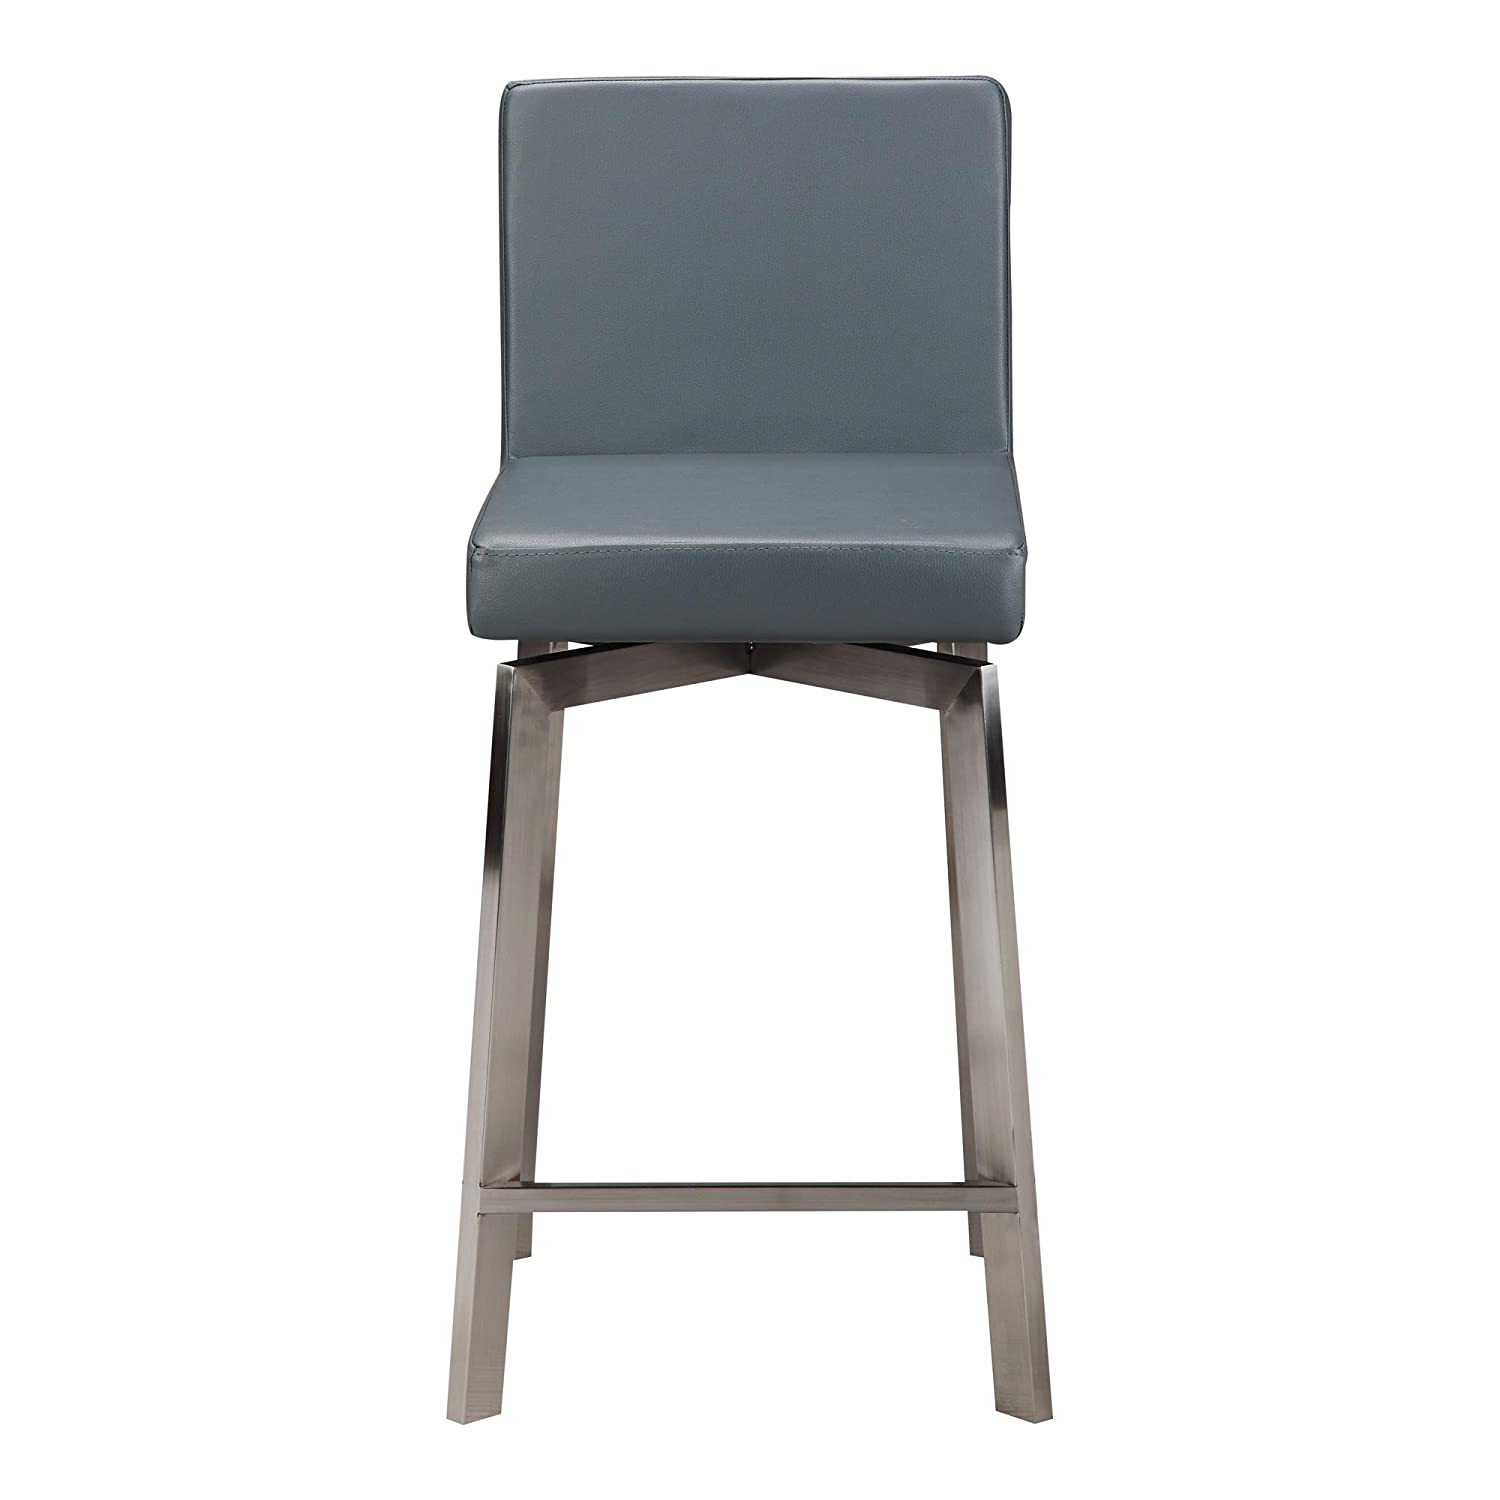 Wondrous Moes Home Collection Giro Counter Stool Grey Pdpeps Interior Chair Design Pdpepsorg